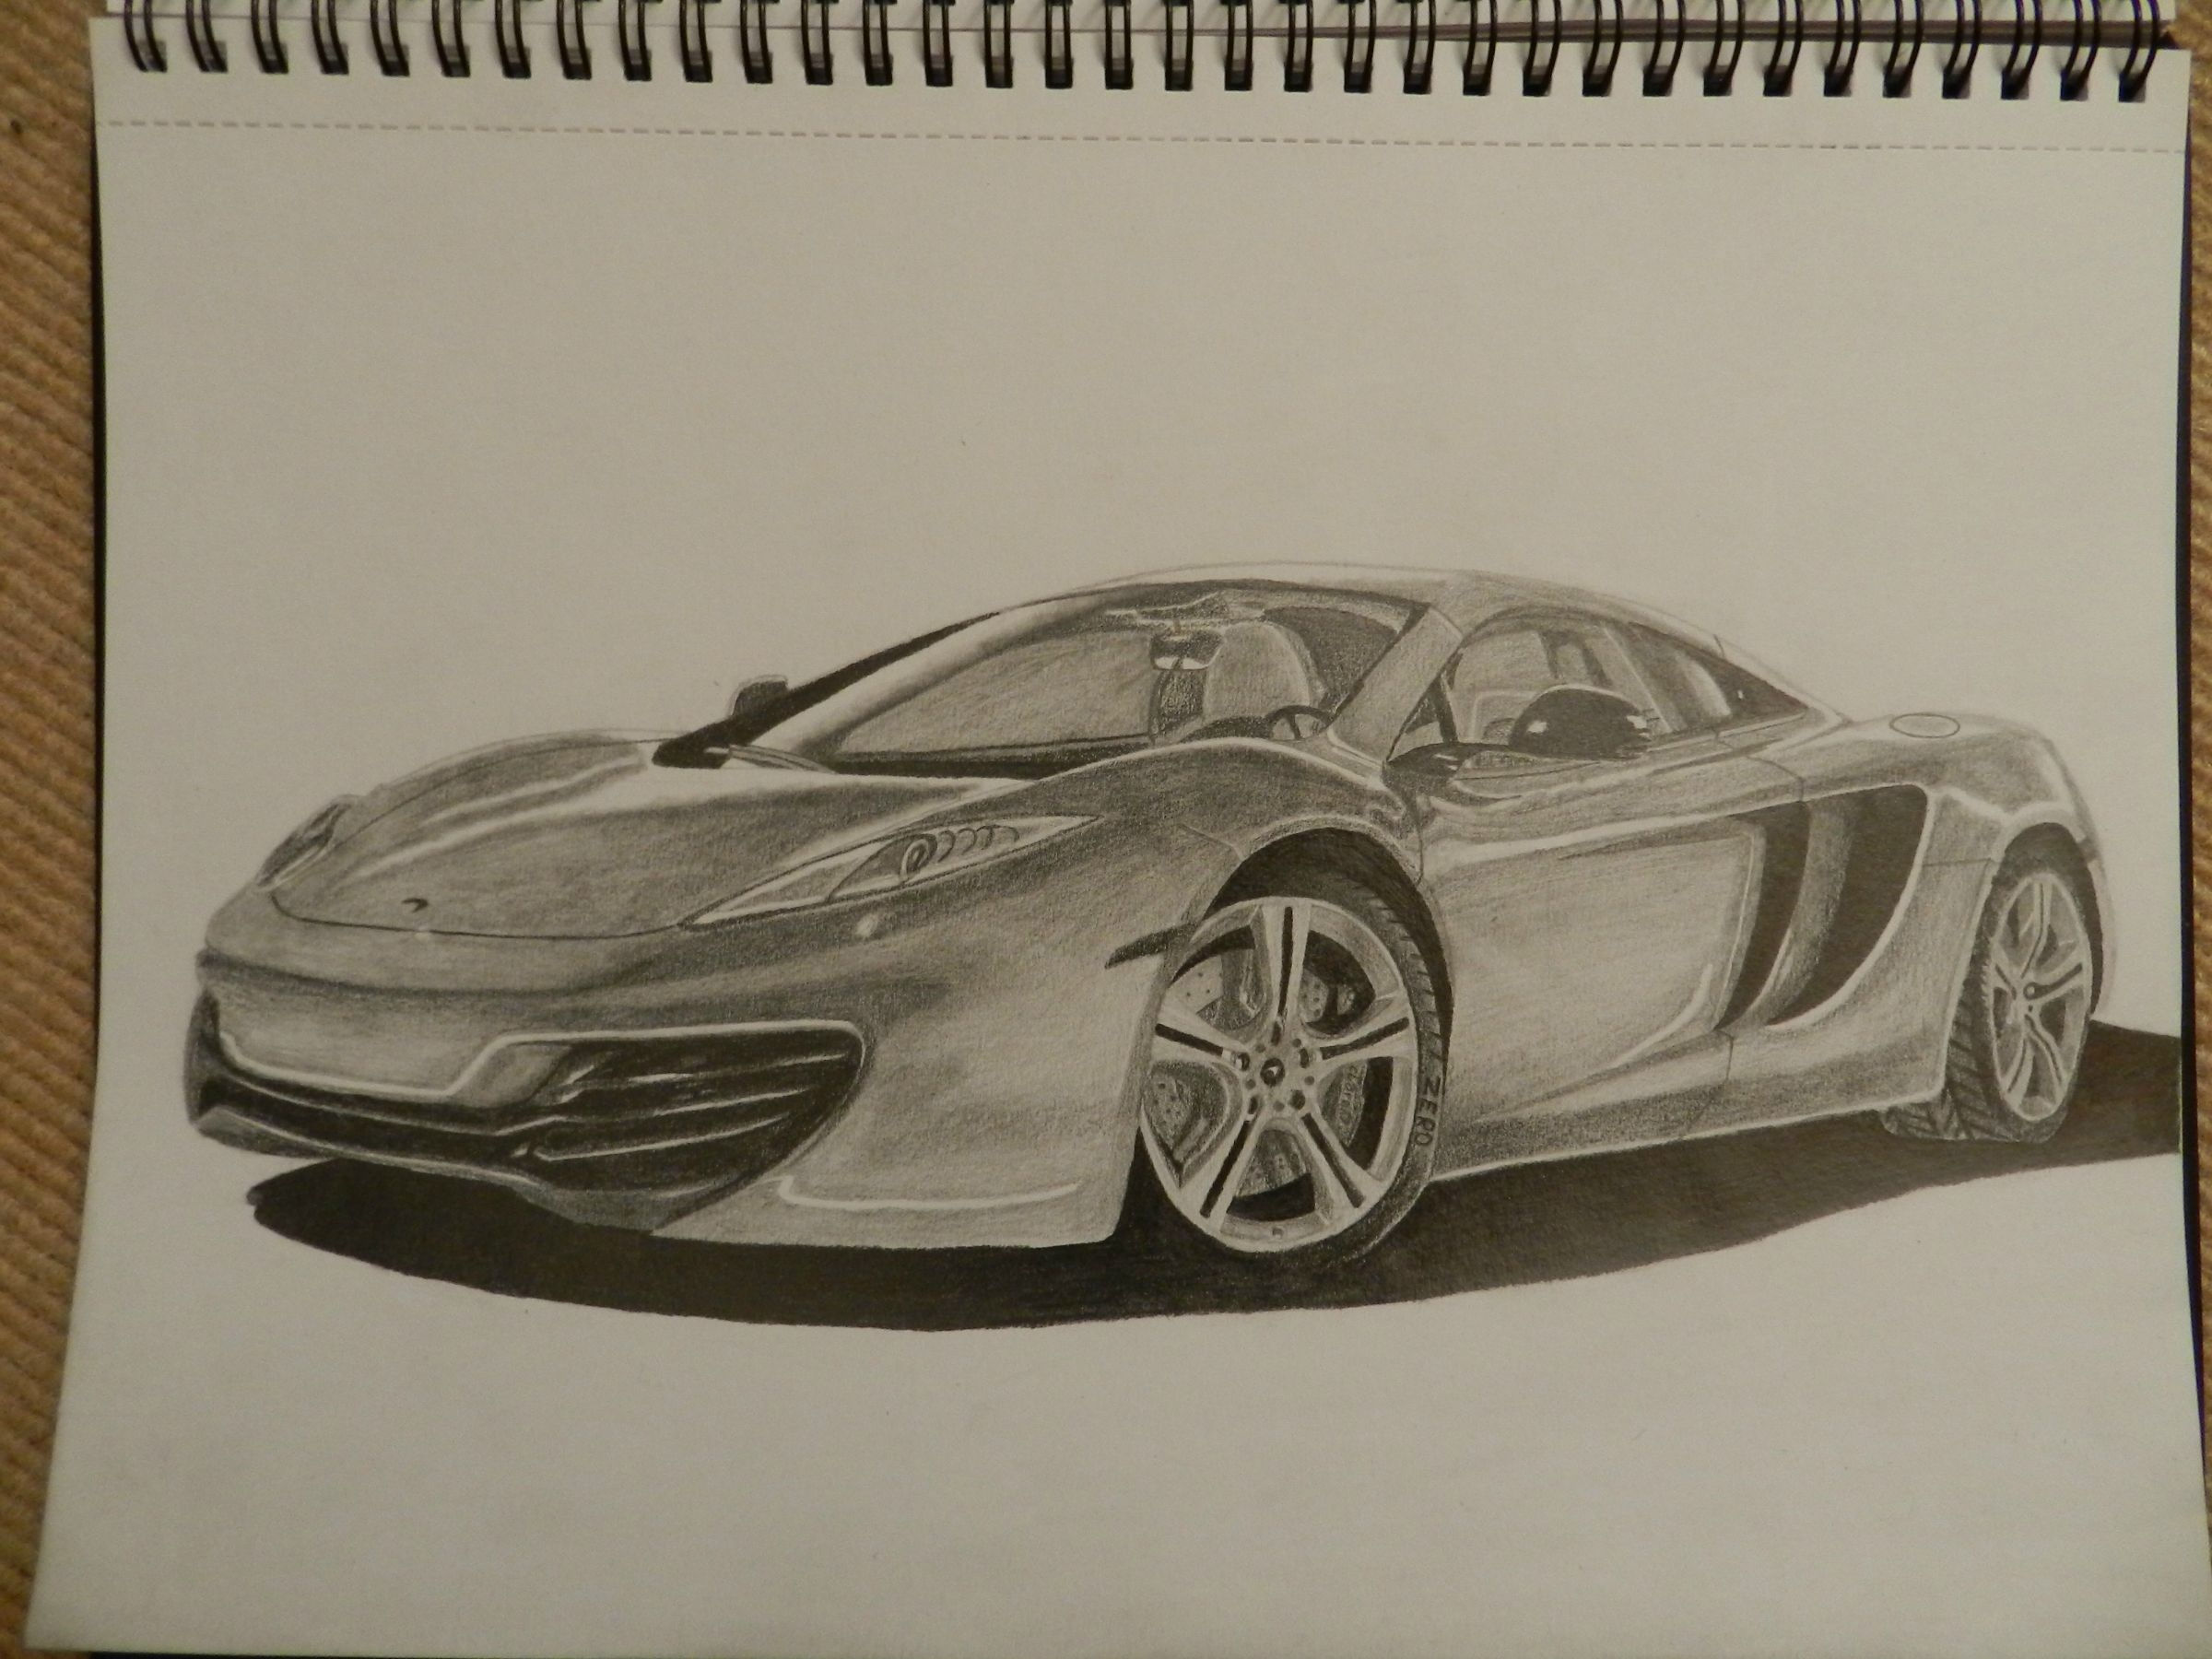 Mclaren Drawing at GetDrawings.com | Free for personal use Mclaren